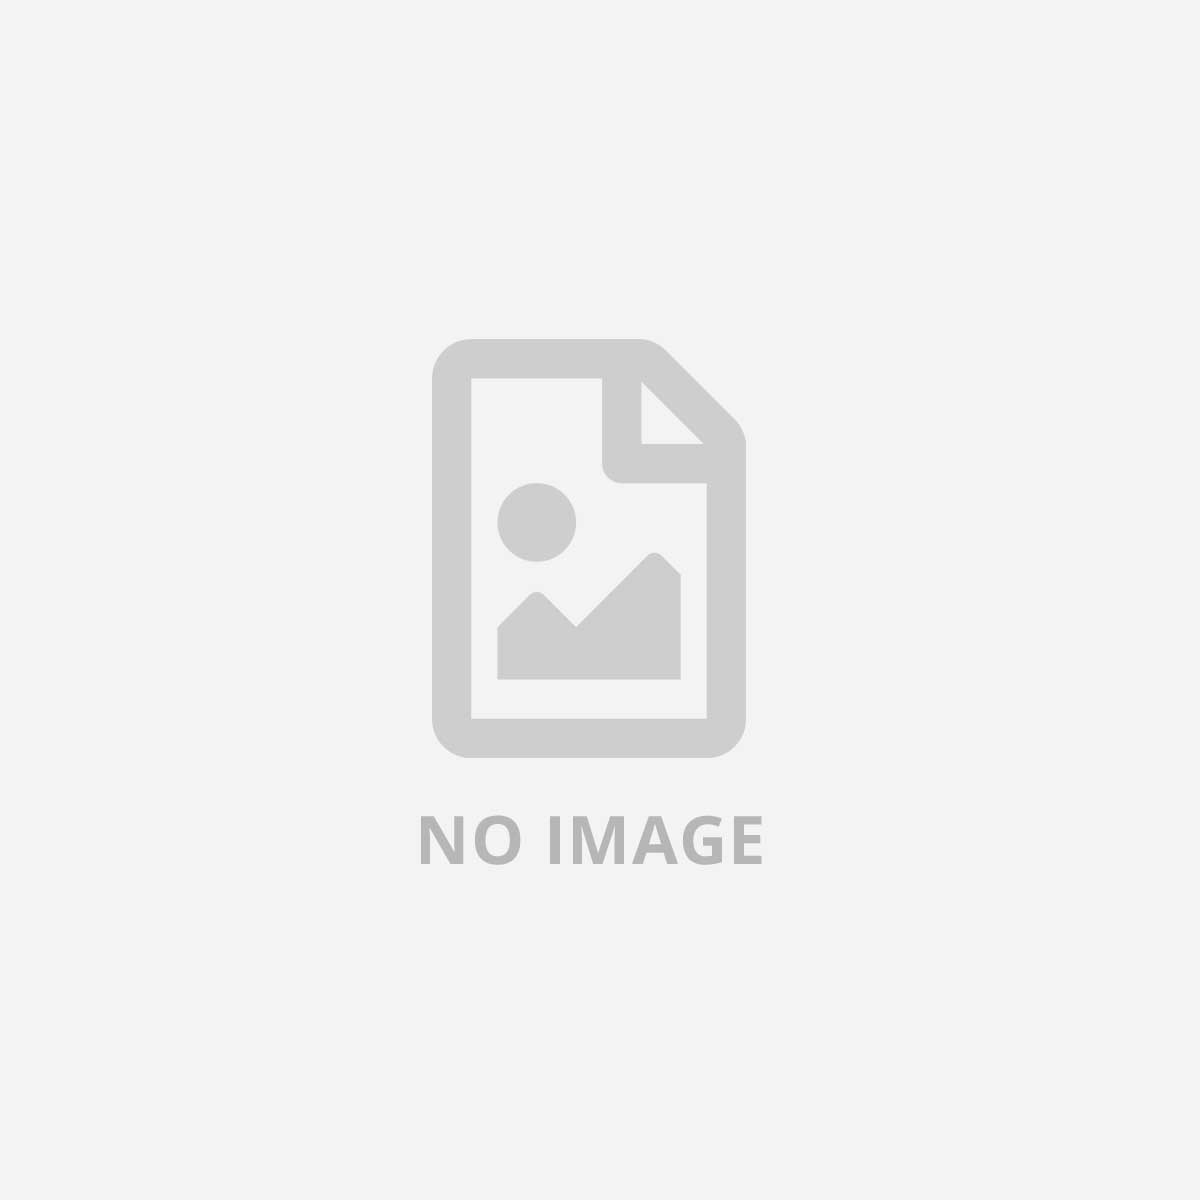 THRUSTMASTER FIRESTORM DUAL ANALOG 4 GAMEPAD